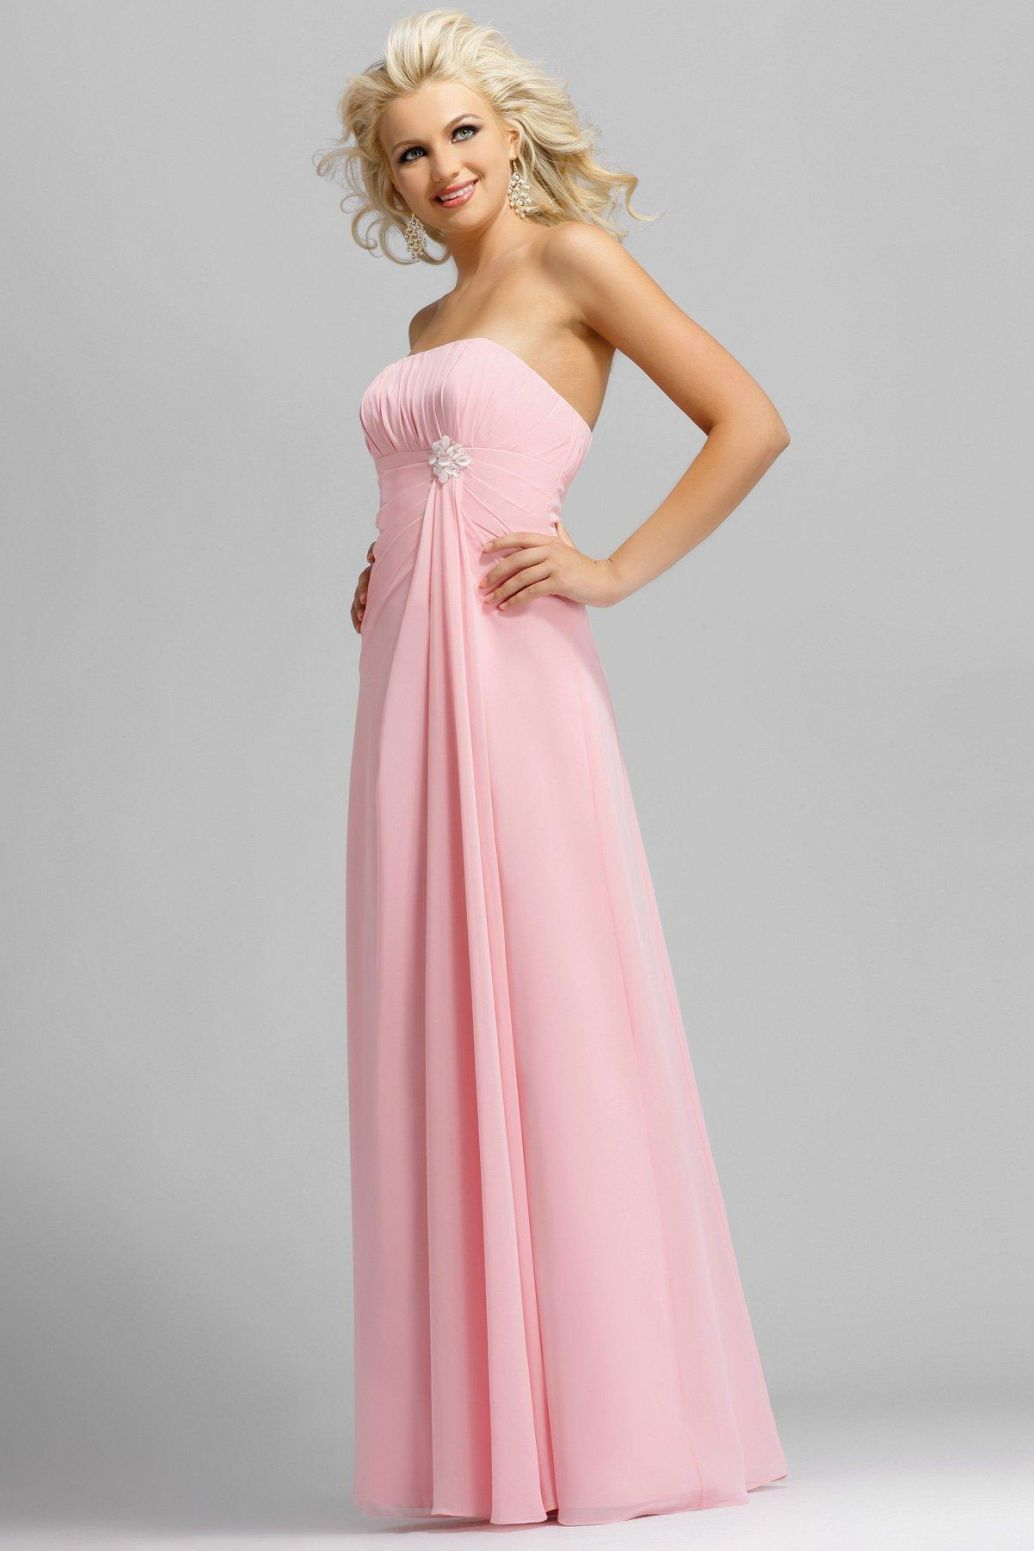 vestidos-rosa-largo-elegante-fiesta | Dresses / Fashion | Pinterest ...